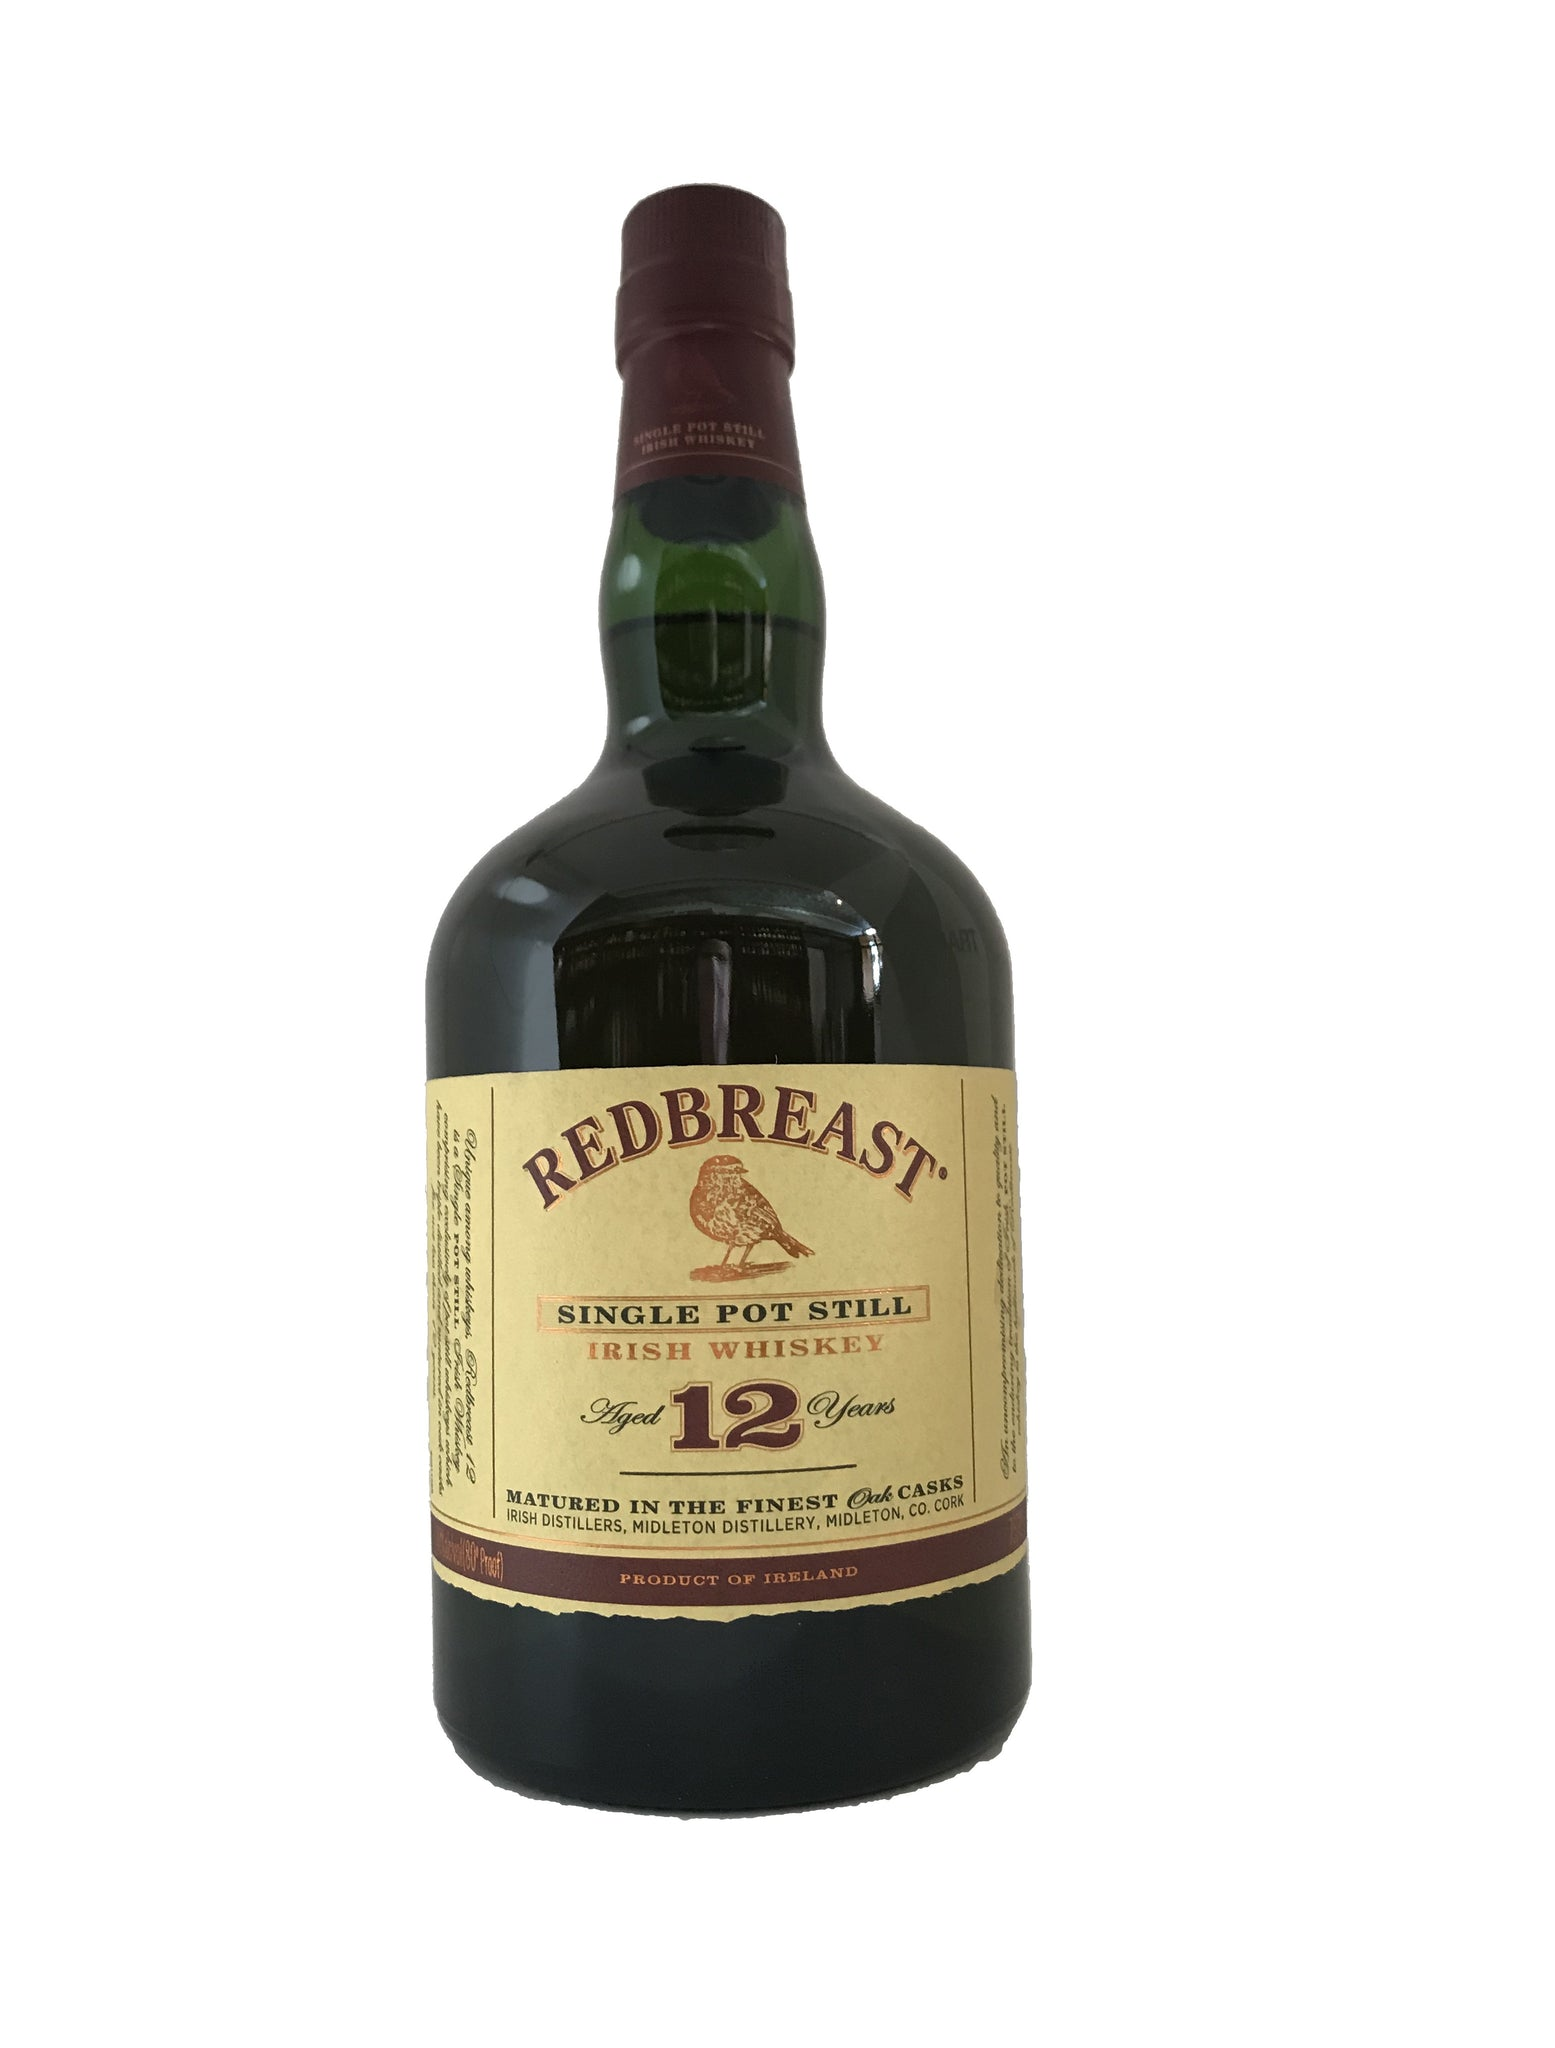 Redbreast 12 Yr Irish Whiskey Single Pot Still